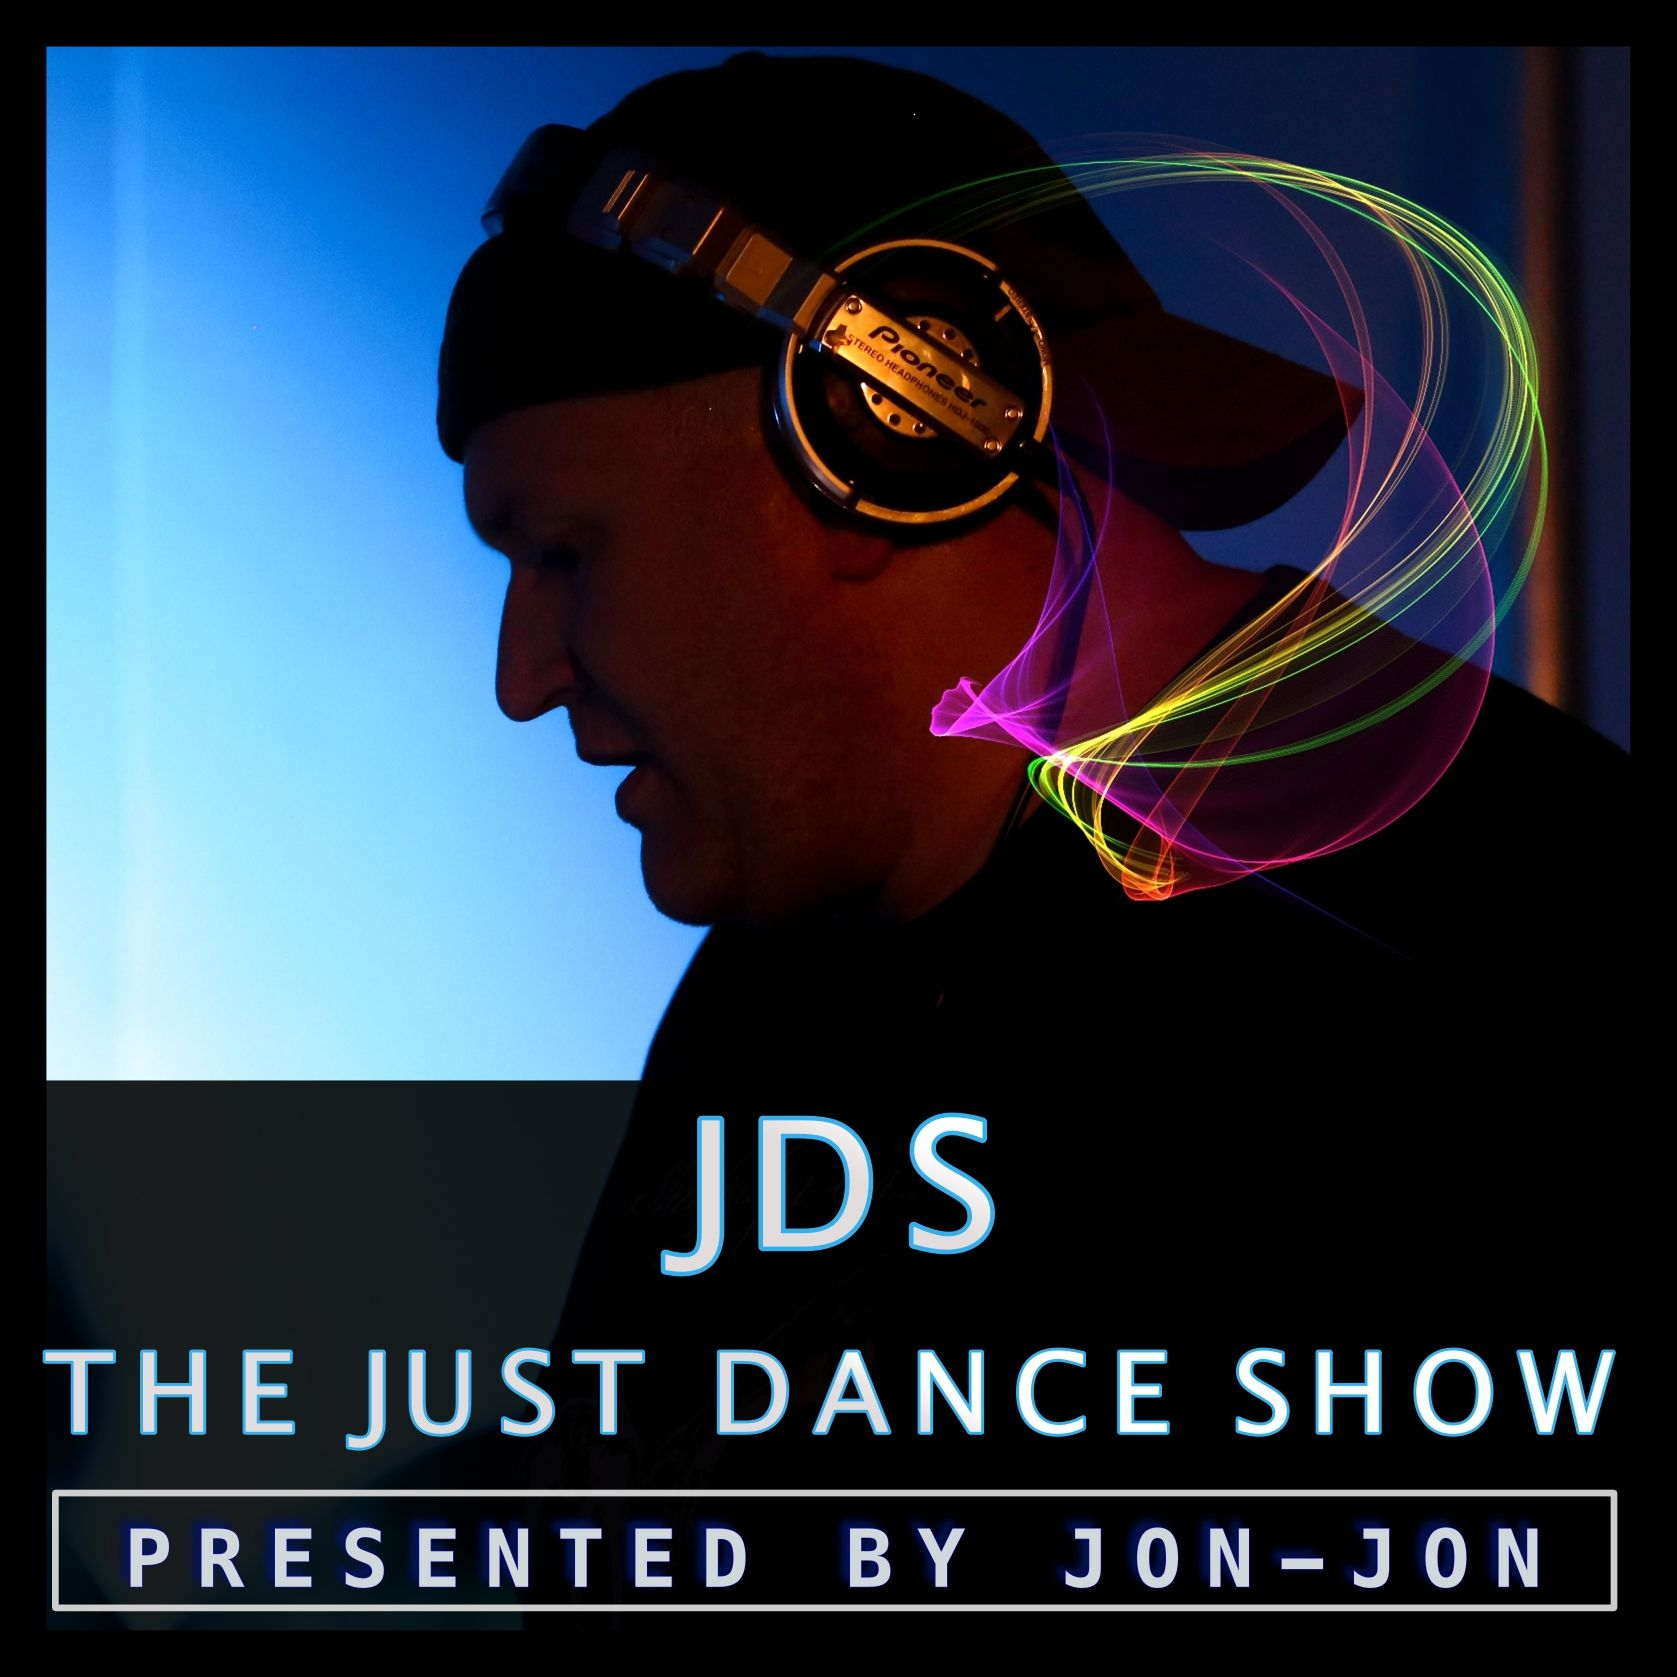 JDS (The Just Dance Show ) - Presented by Jon-Jon